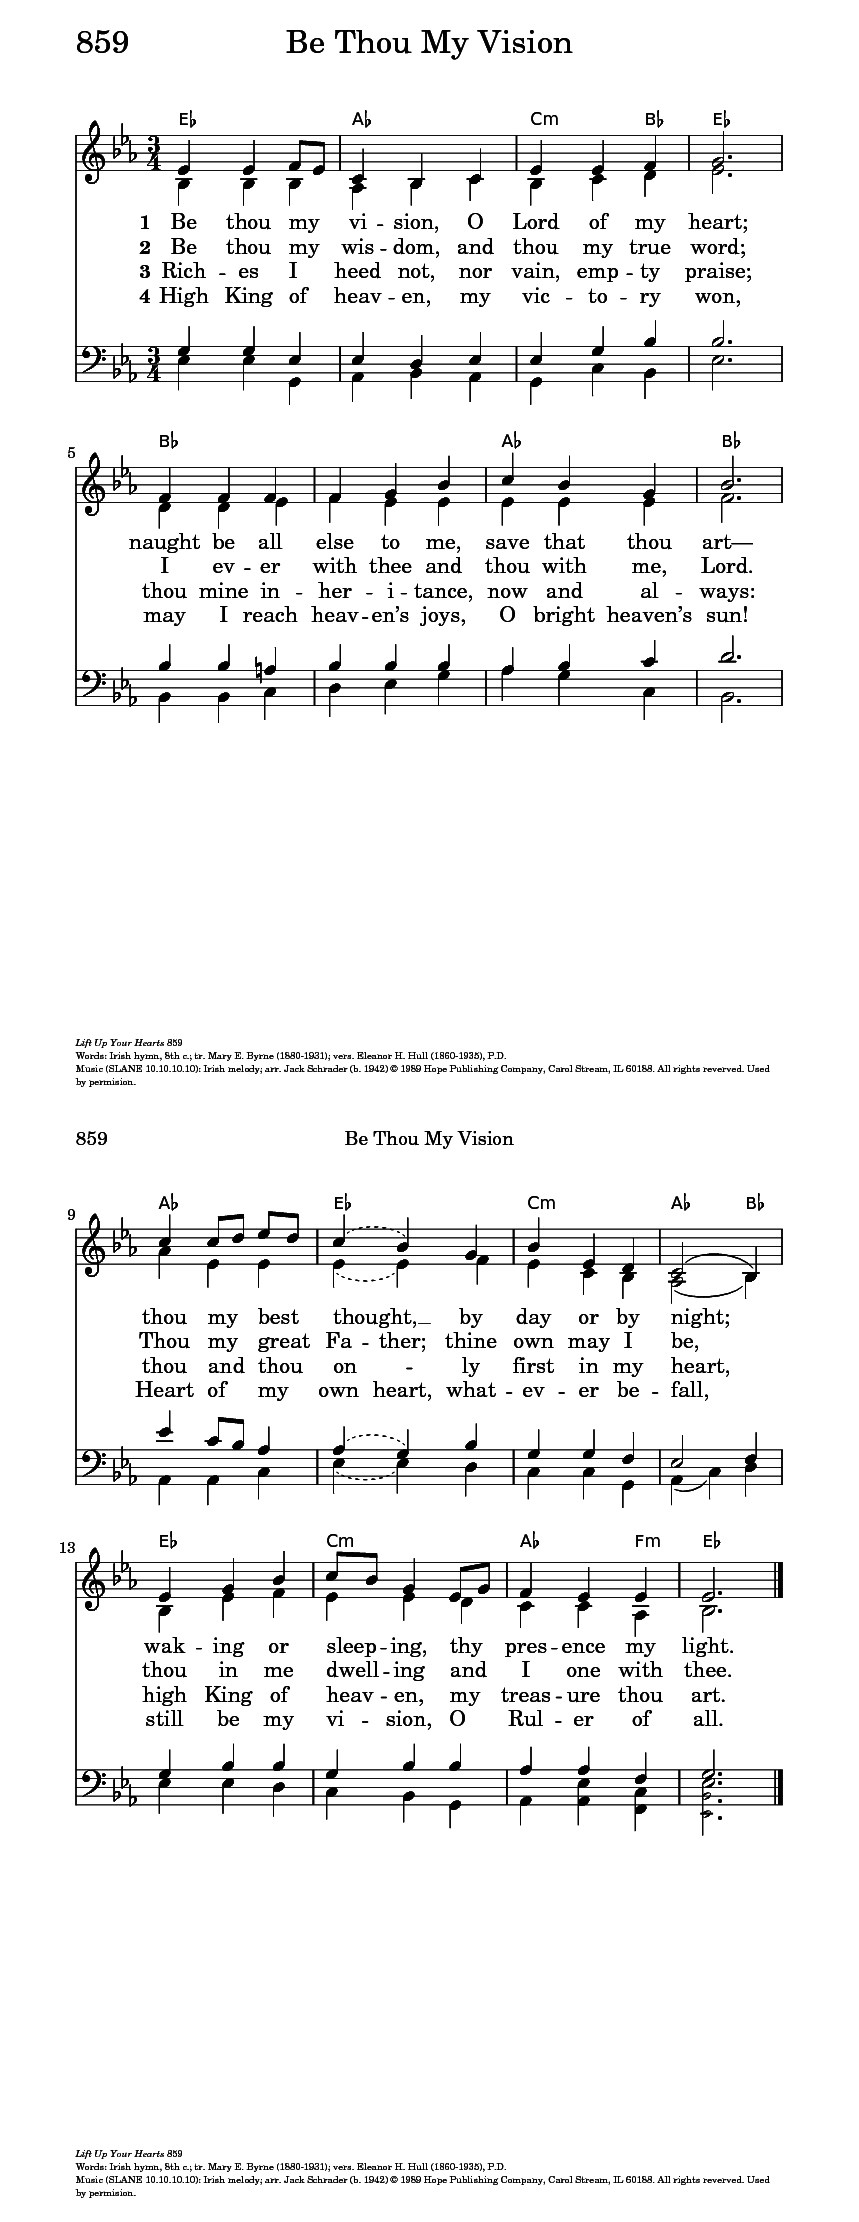 Be Thou My Vision Chords Be Thou My Vision Hymnary